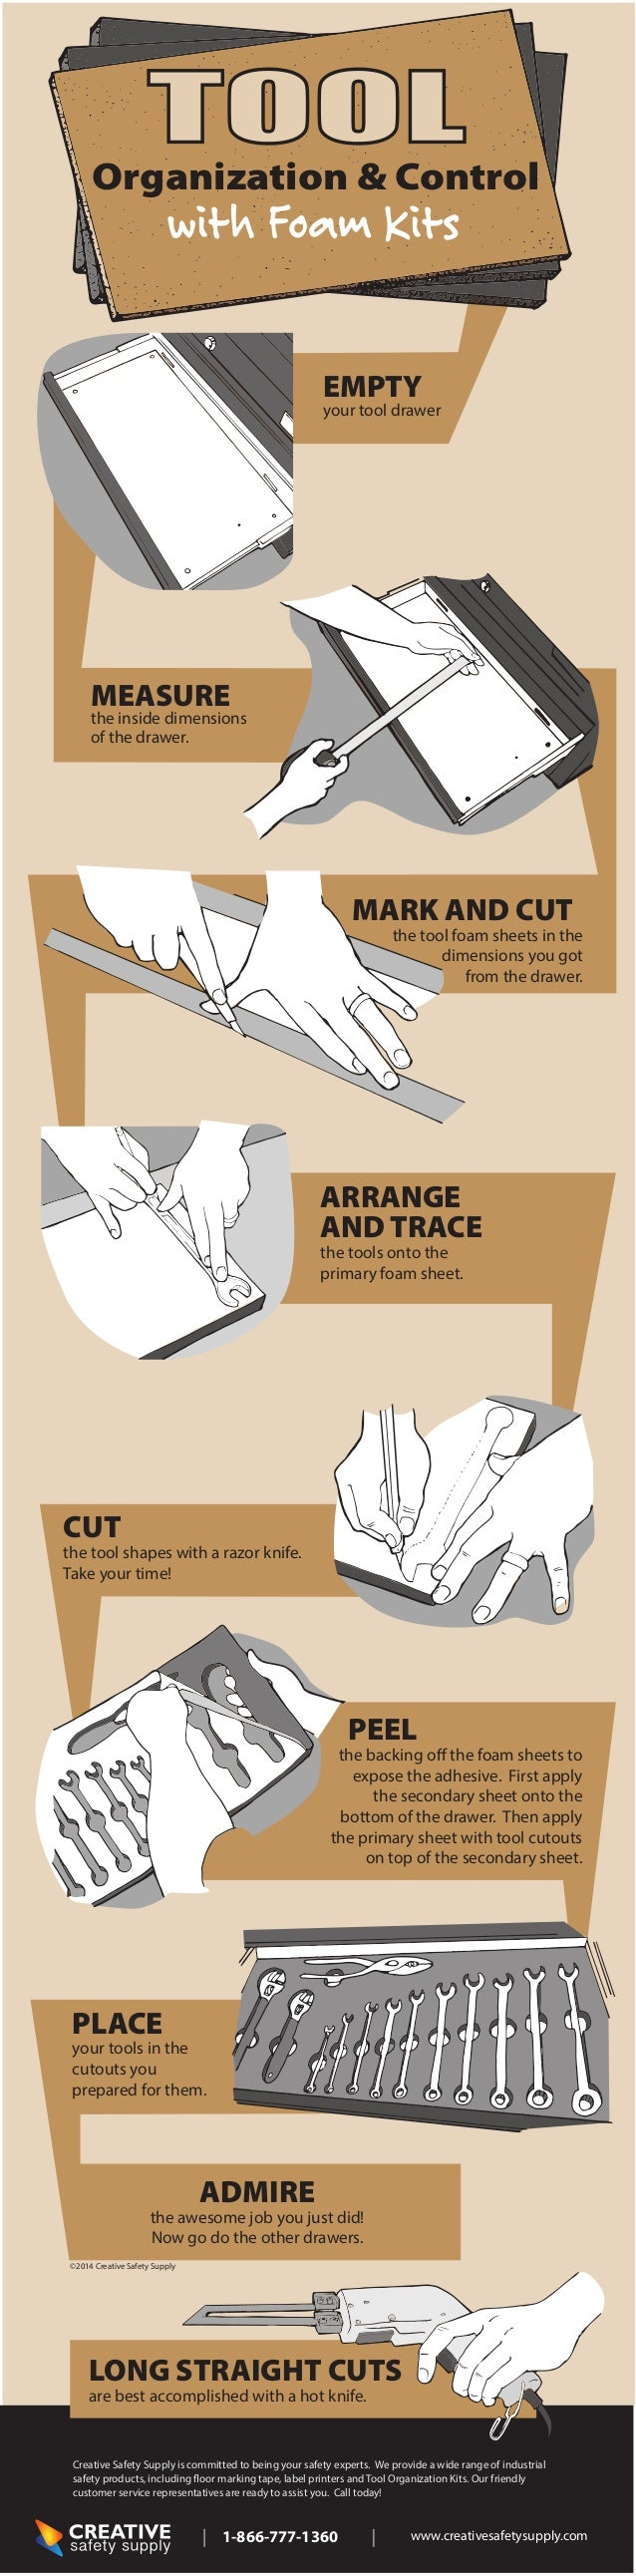 ARRANGE AND TRACE the tools onto the primary foam sheet. EMPTY your tool drawer MEASURE the inside dimensions of the drawe...